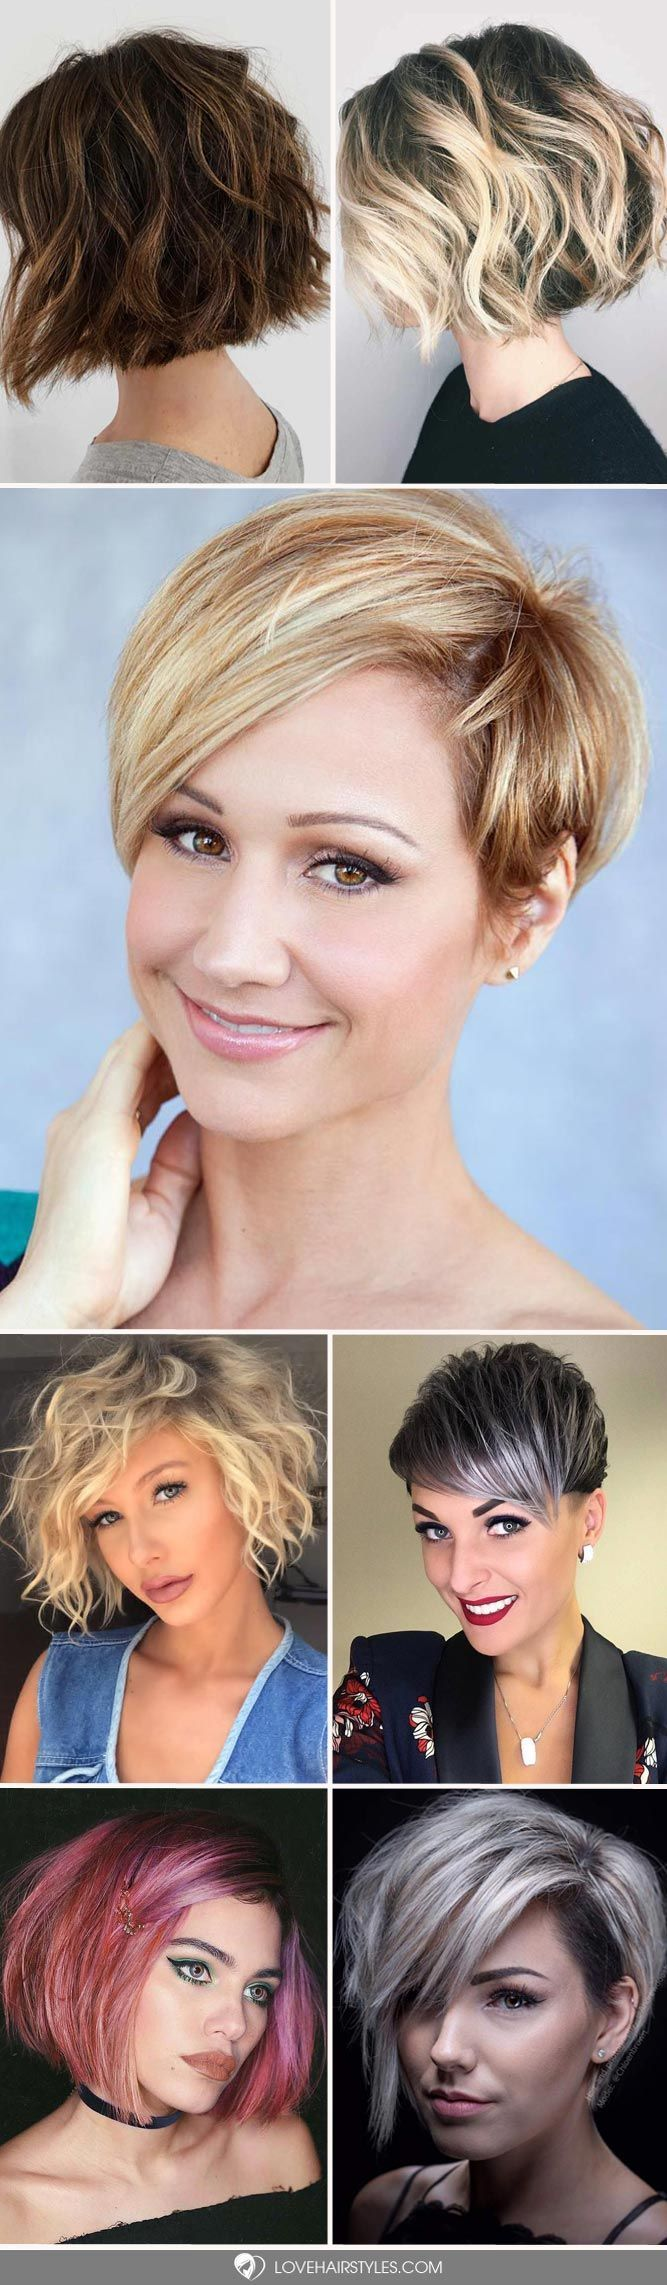 Quick Hairstyles For Short Hair Unique 21 Super Quick Hairstyles For Short Hair  Short Hair Shorts And